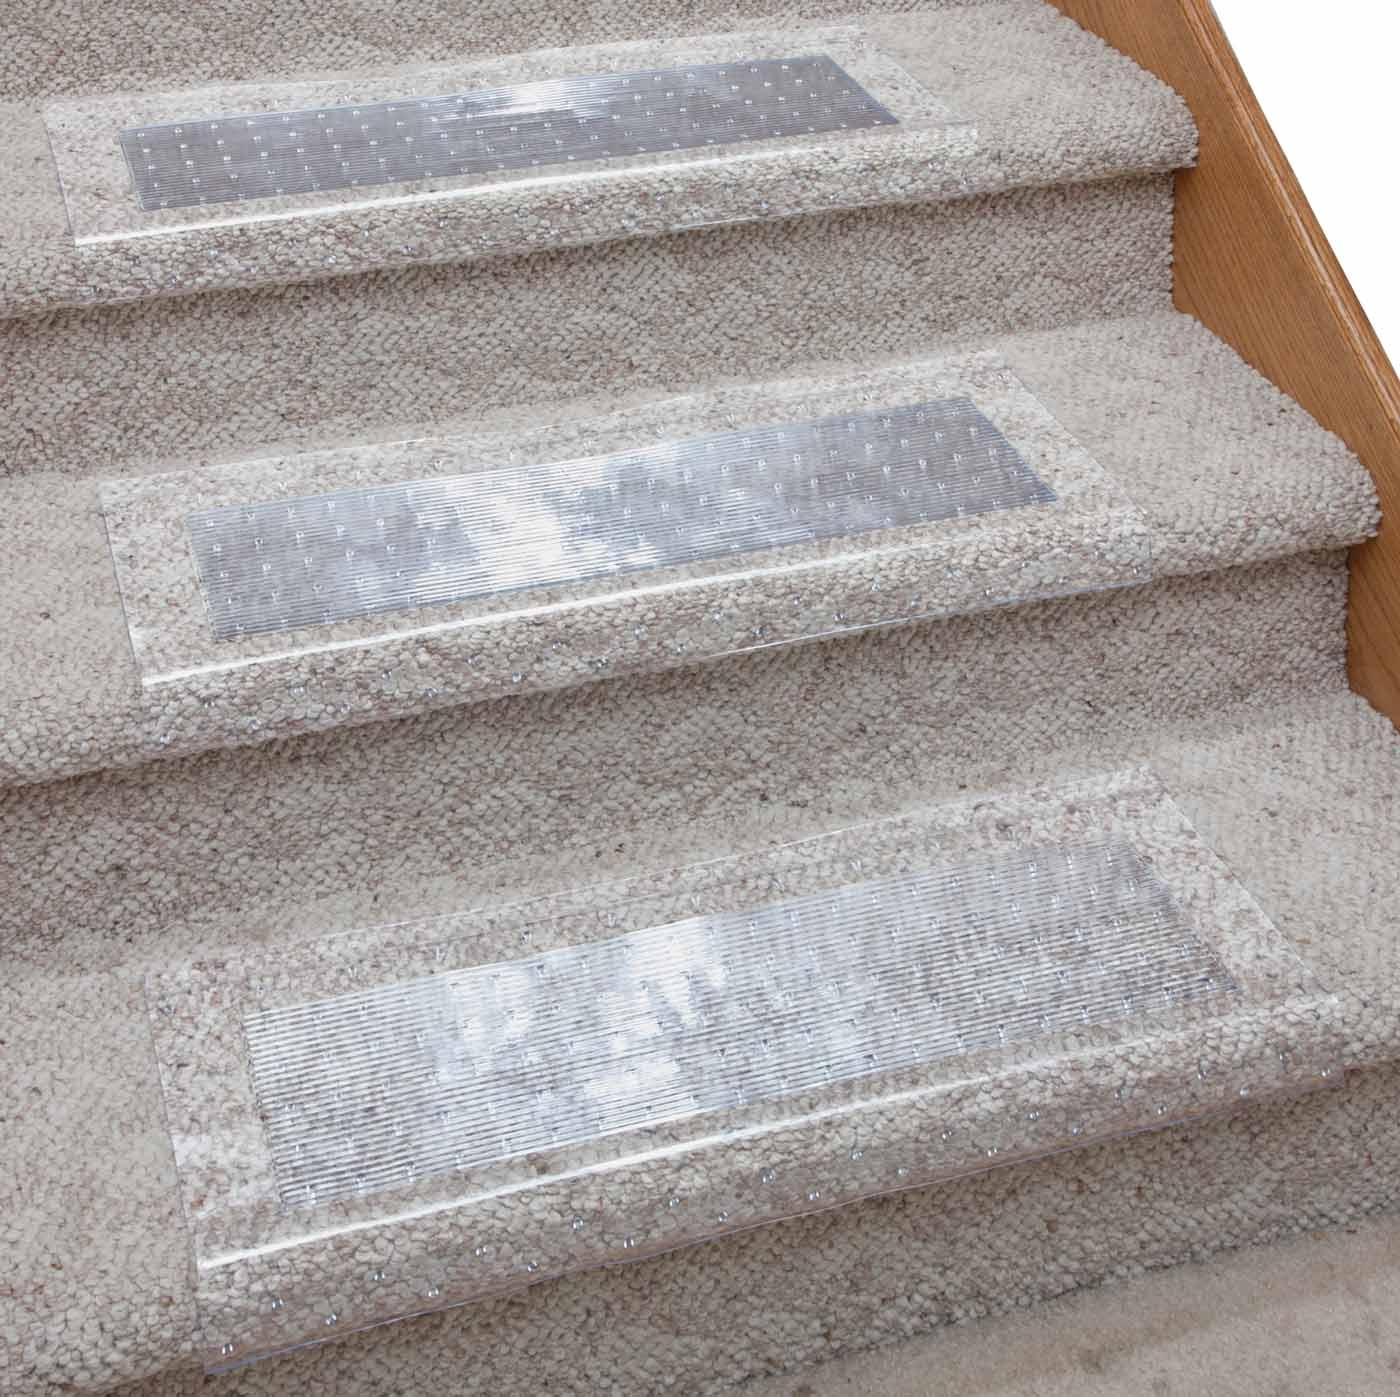 54 Stair Carpet Protectors Protector Carpets Inspirations Vinyl For Stair Tread Carpet Protectors (View 5 of 15)